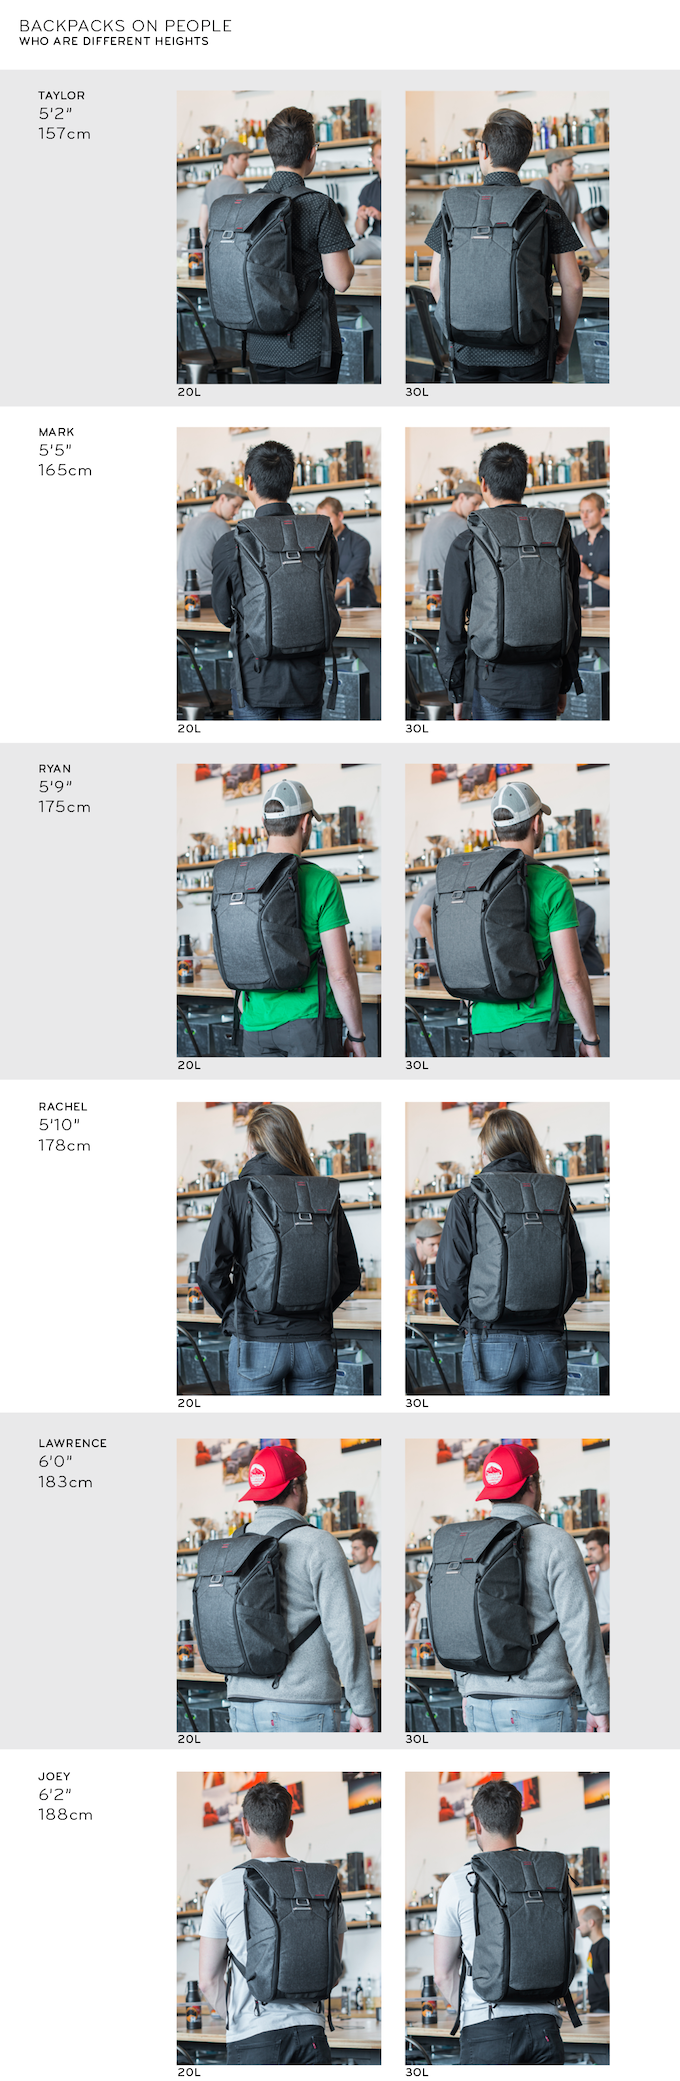 Our Favorite Camera Bags For 2018 Reviews By Wirecutter A New Peak Design Shell Large Demoed The Two Sizes On Variety Of People